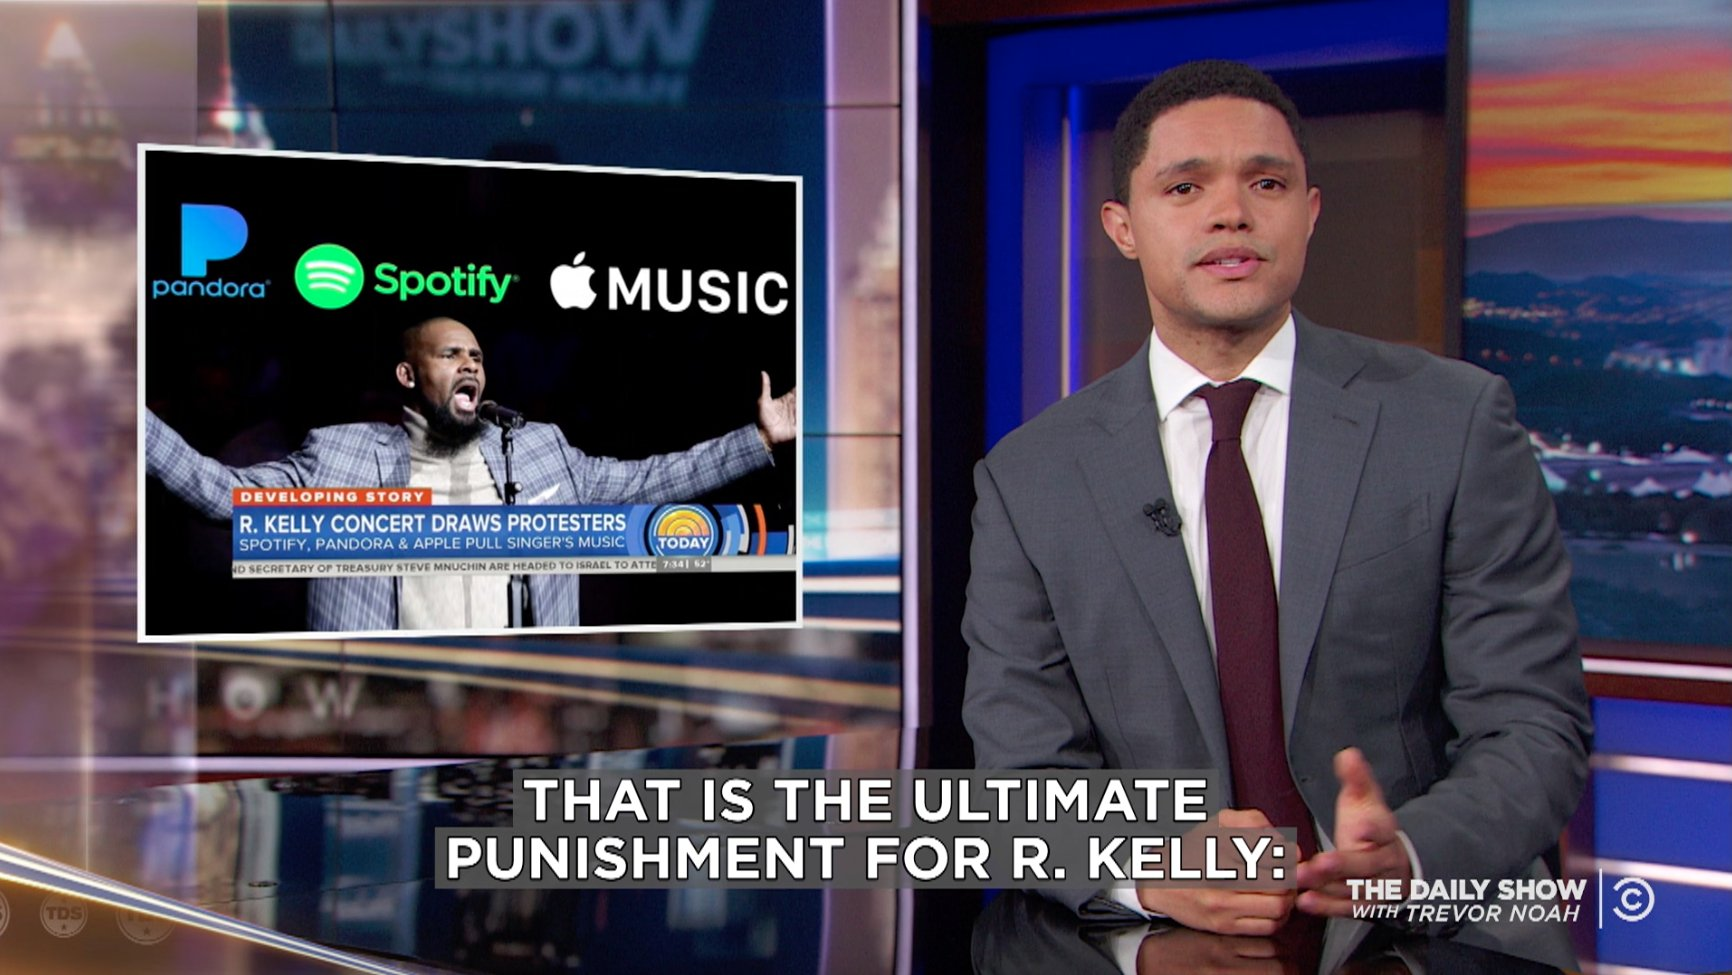 Music streaming services have stopped recommending R. Kelly, which @TheDailyShow is also doing. https://t.co/3IR9CbKGai